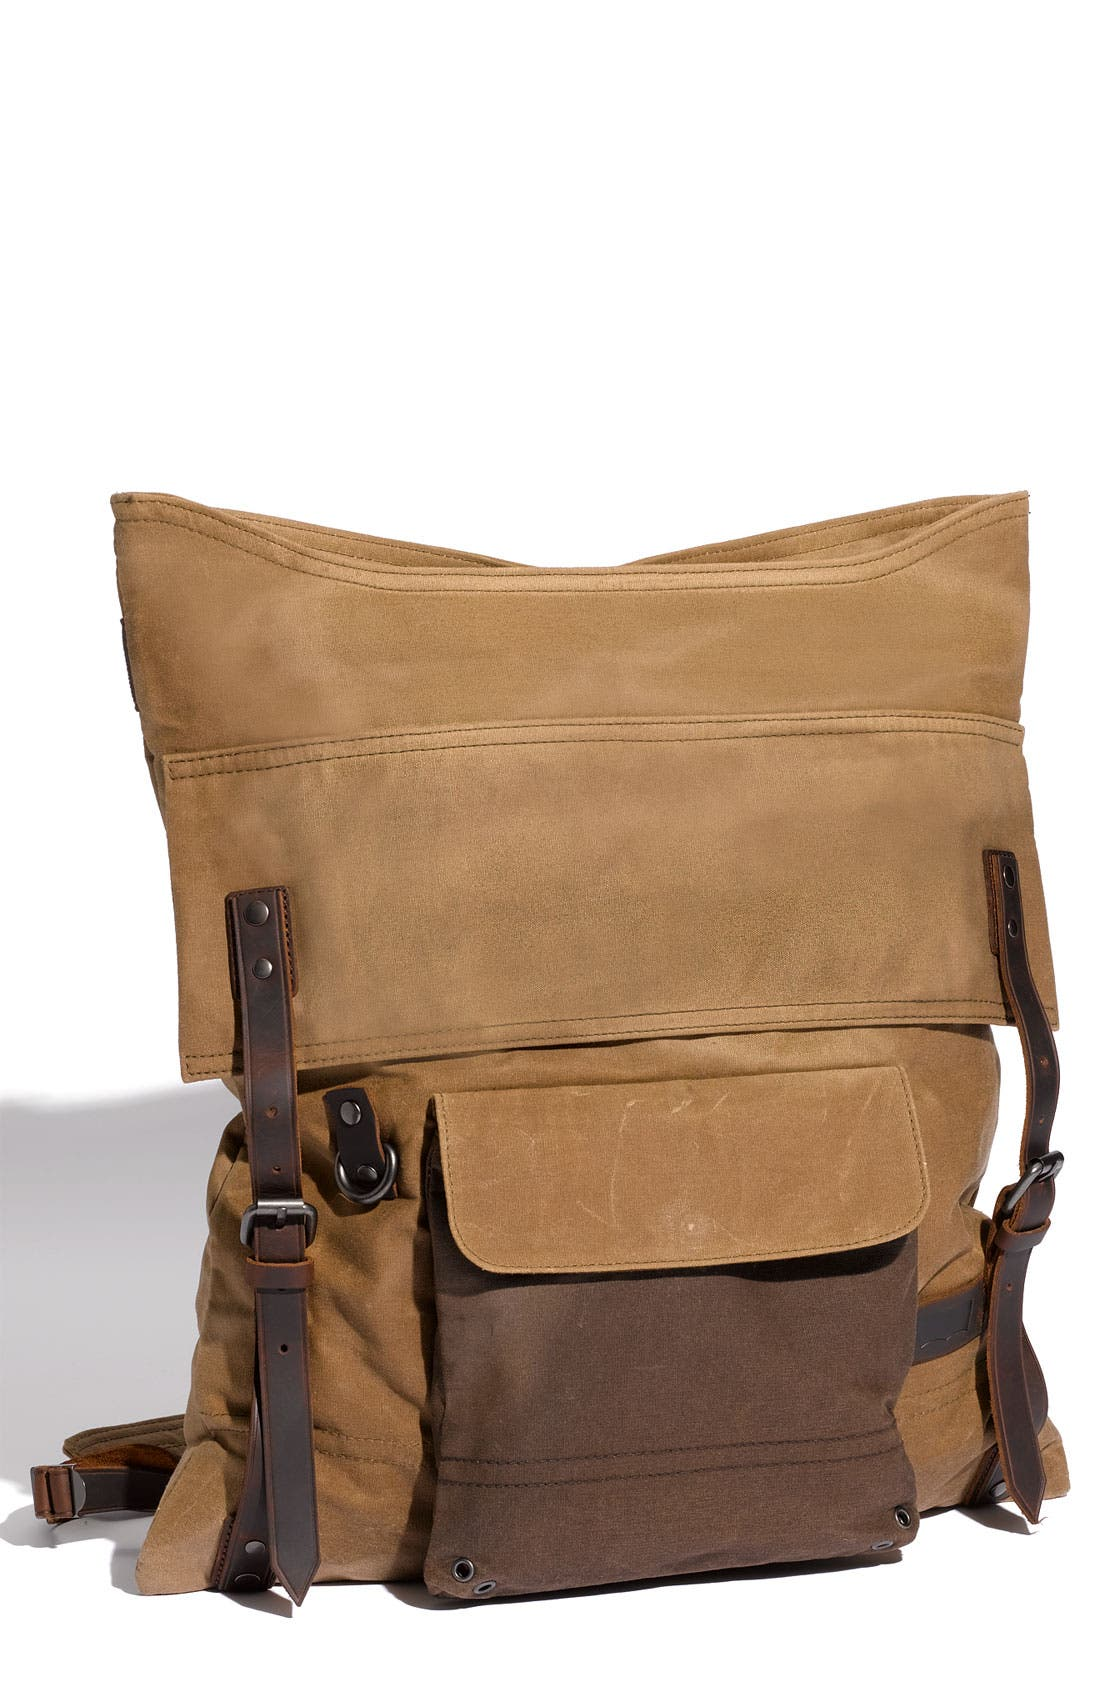 Main Image - Levi's 'River Rock' Backpack